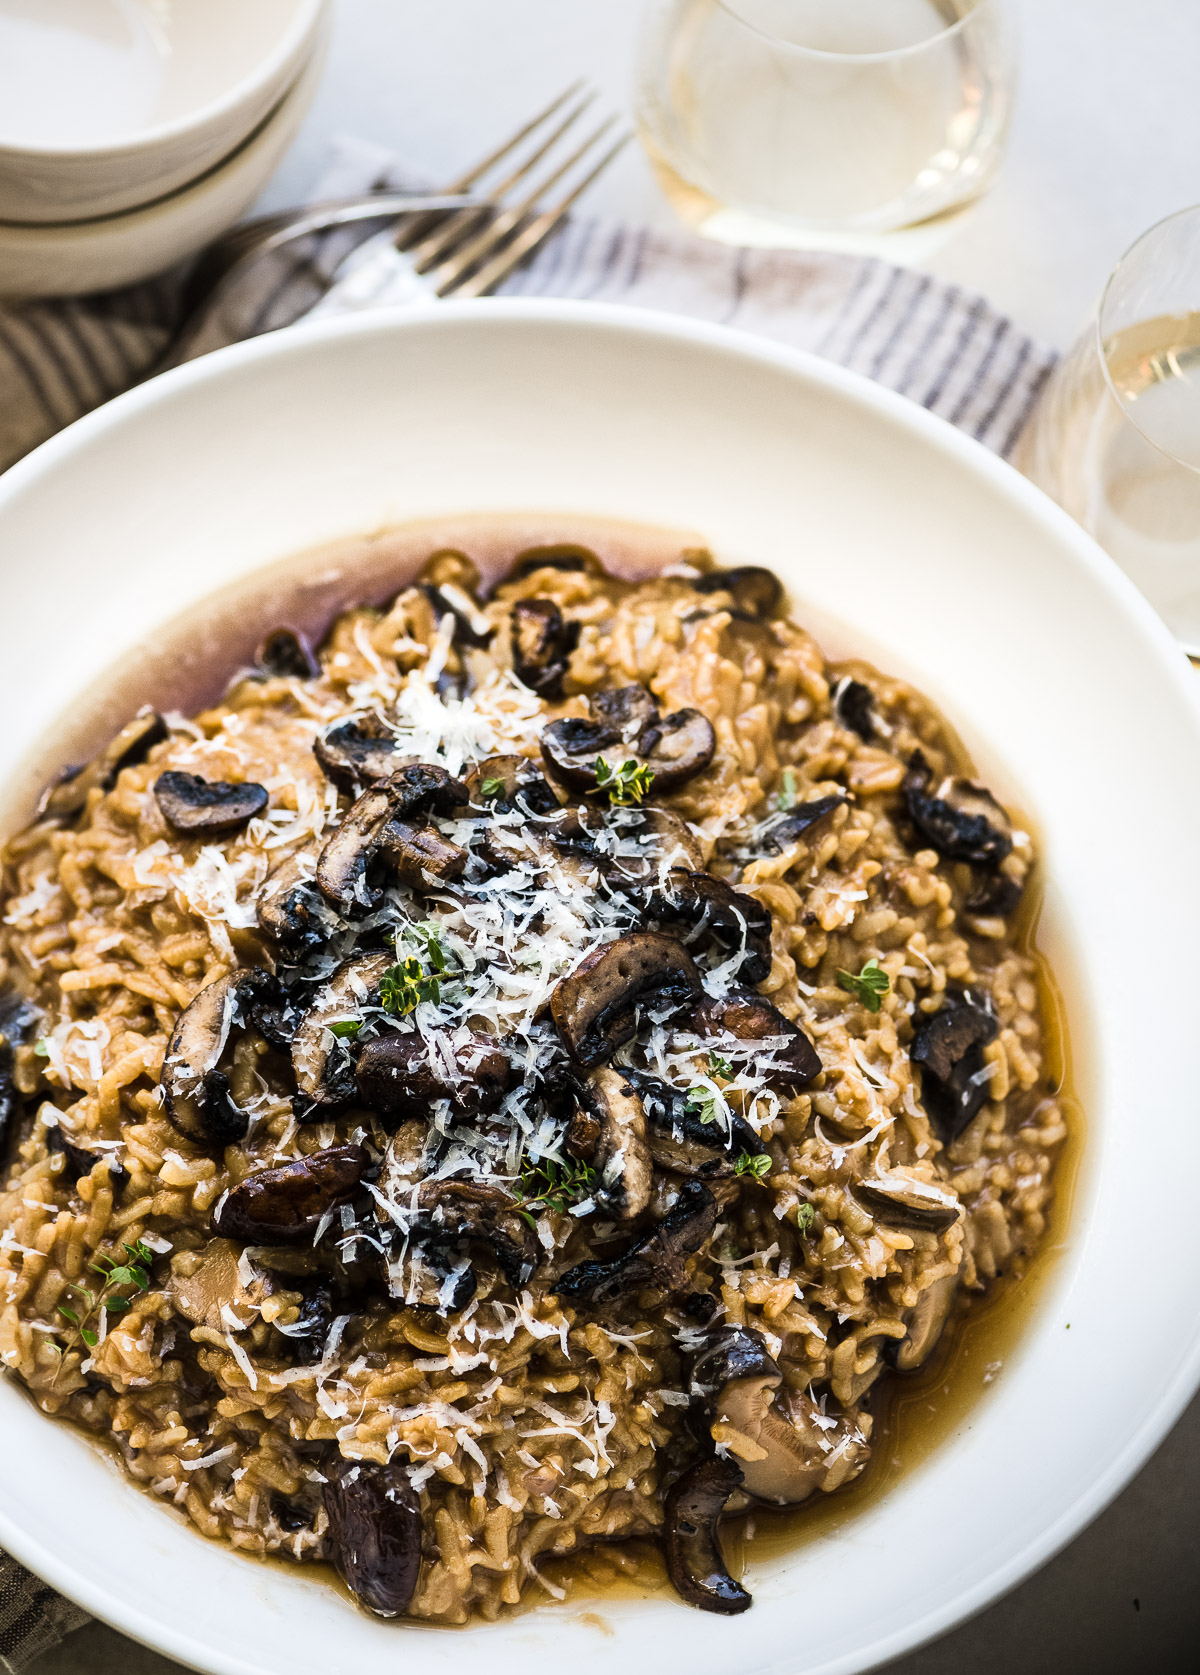 Instant Pot Wild Mushroom Risotto in a white bowl with wine